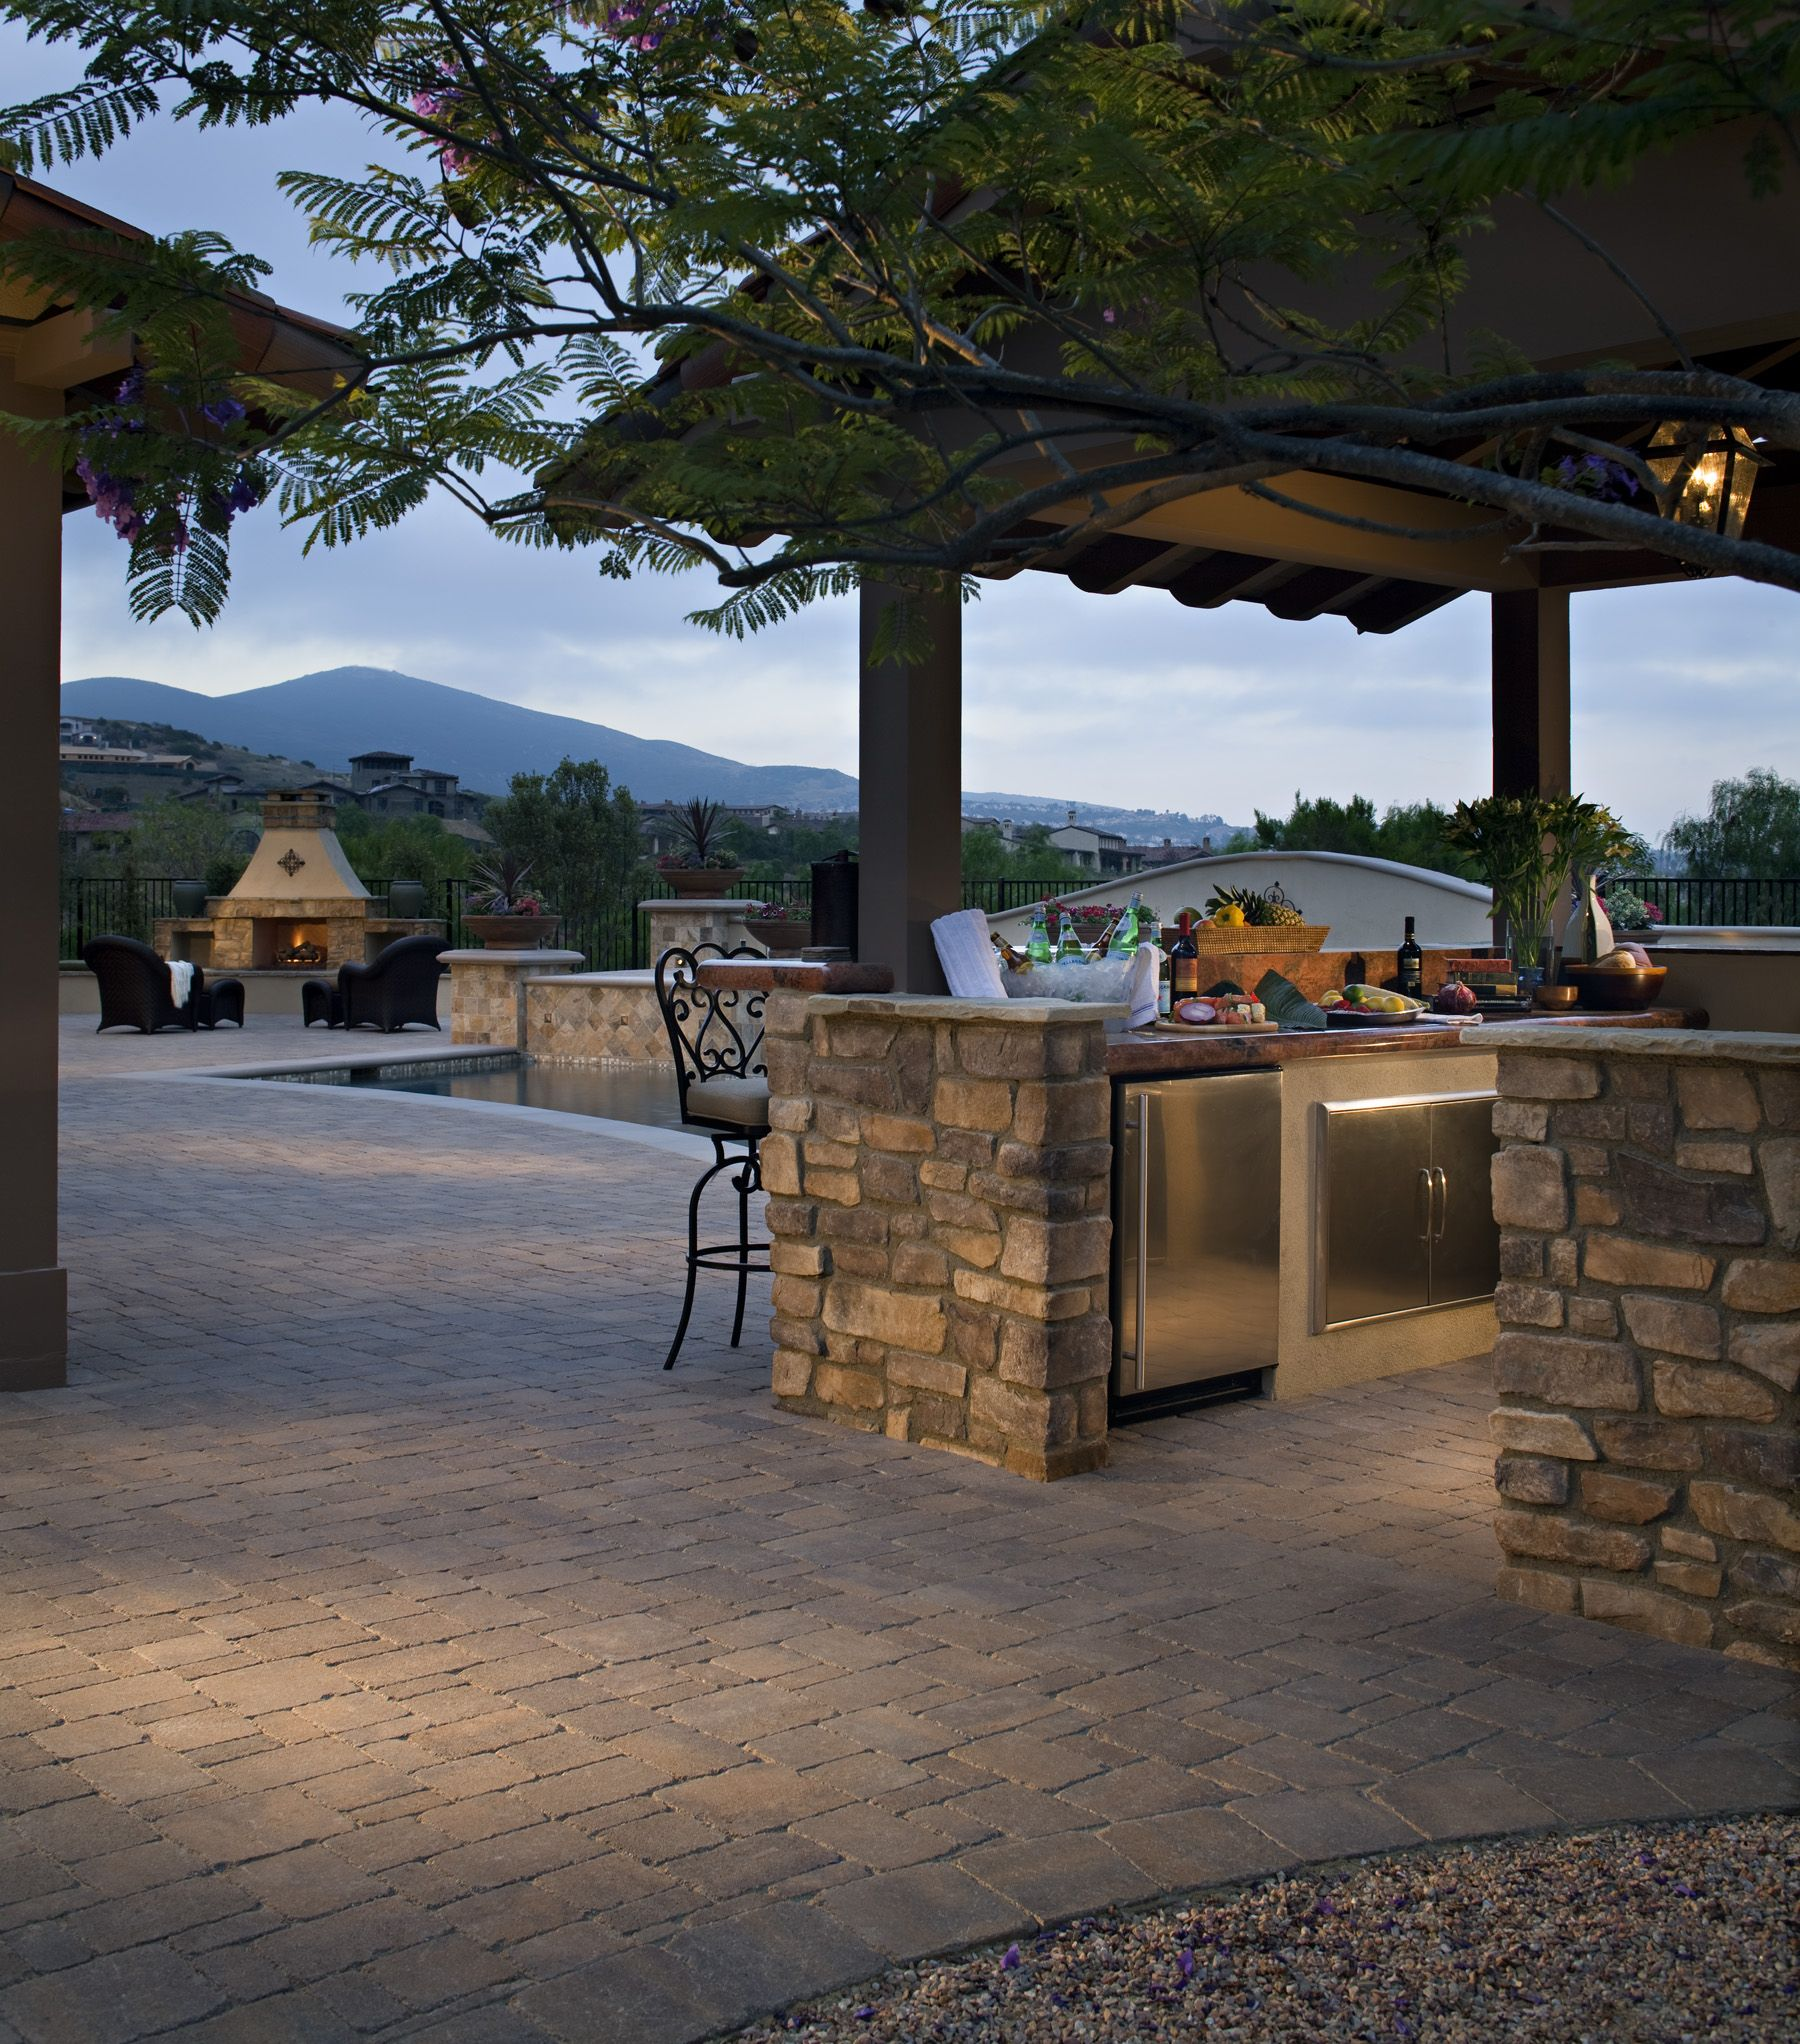 San Antonio Brick Patio Ideas: Backyard Covered Patios, Belgard Pavers